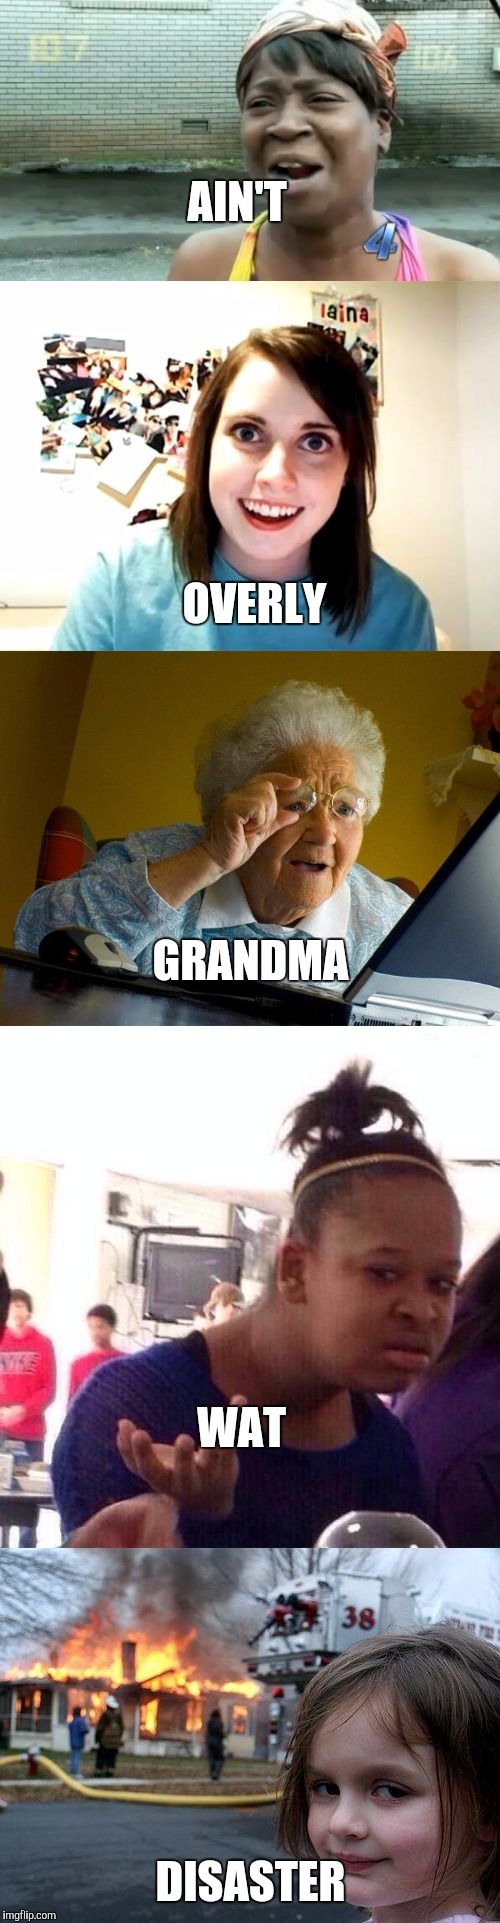 AIN'T DISASTER OVERLY WAT GRANDMA | made w/ Imgflip meme maker